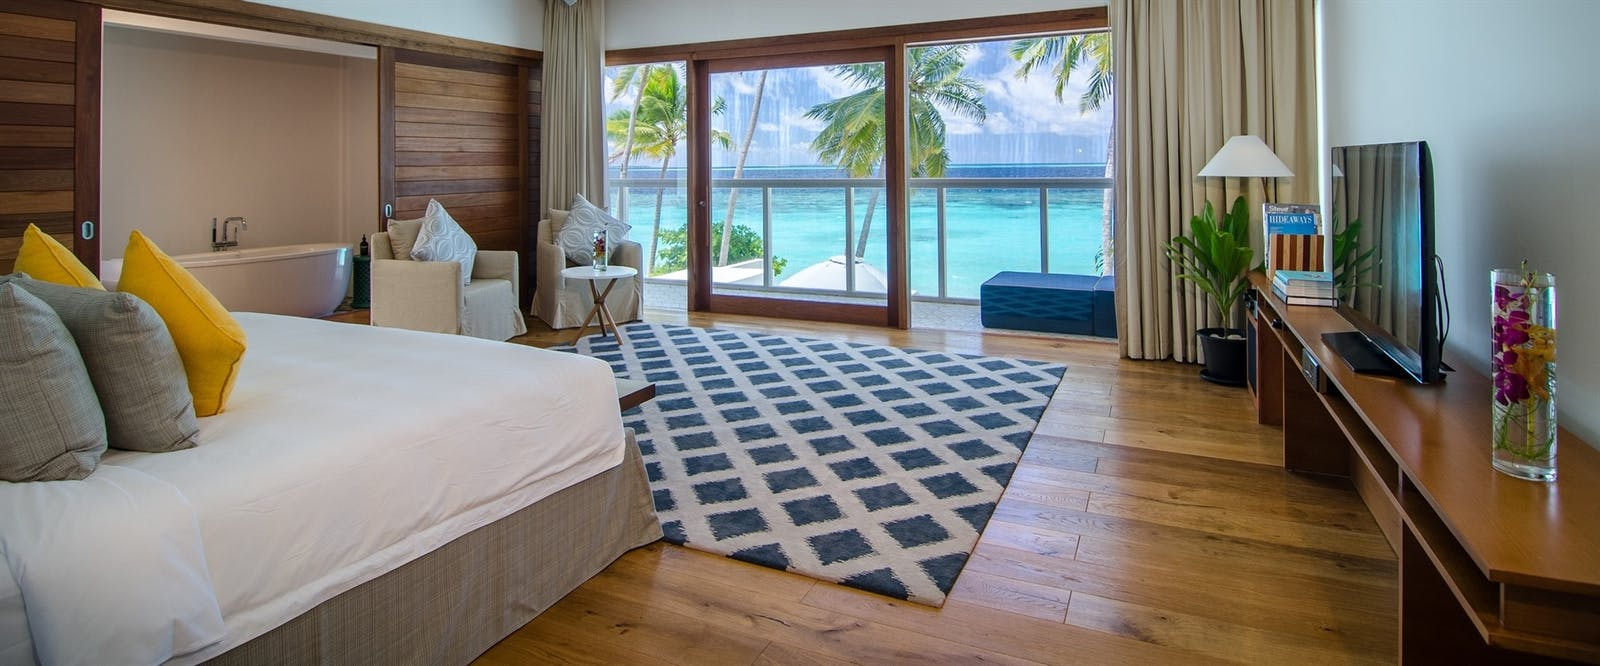 Four Bedroom Residence at Amilla Fushi, Maldives